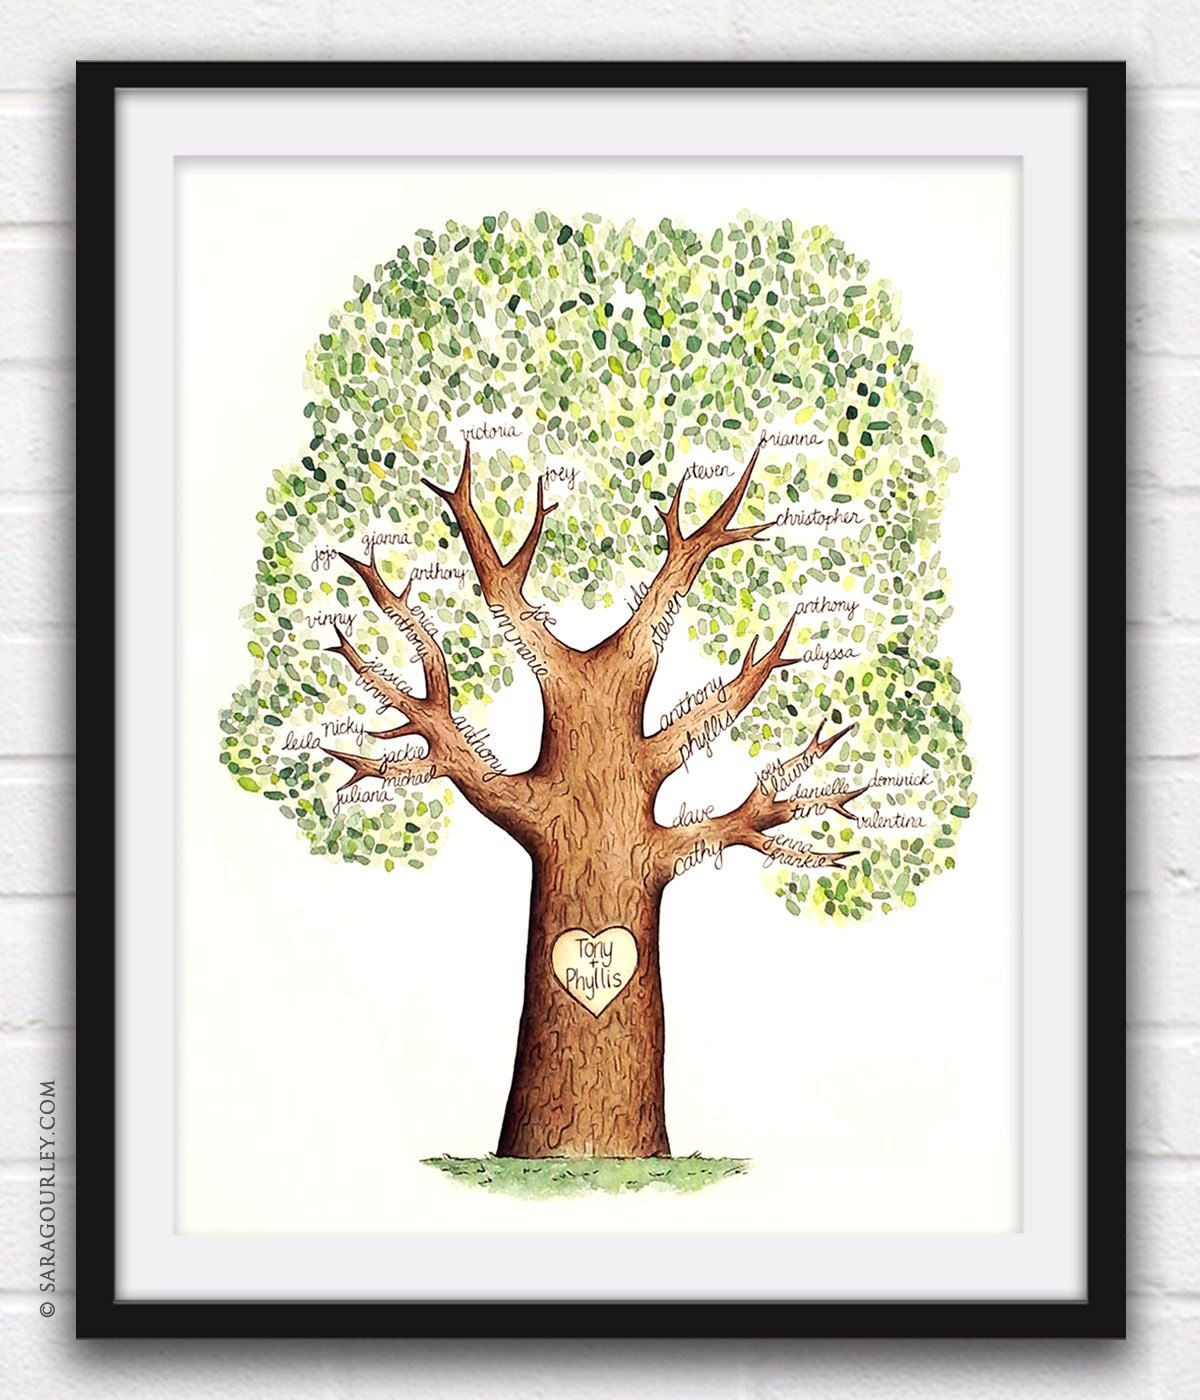 Custom Family Tree Watercolor Personalized Hand Painted Handmade Original Generation Mothers Day Gift Grandparents By SaraGourleyArt On